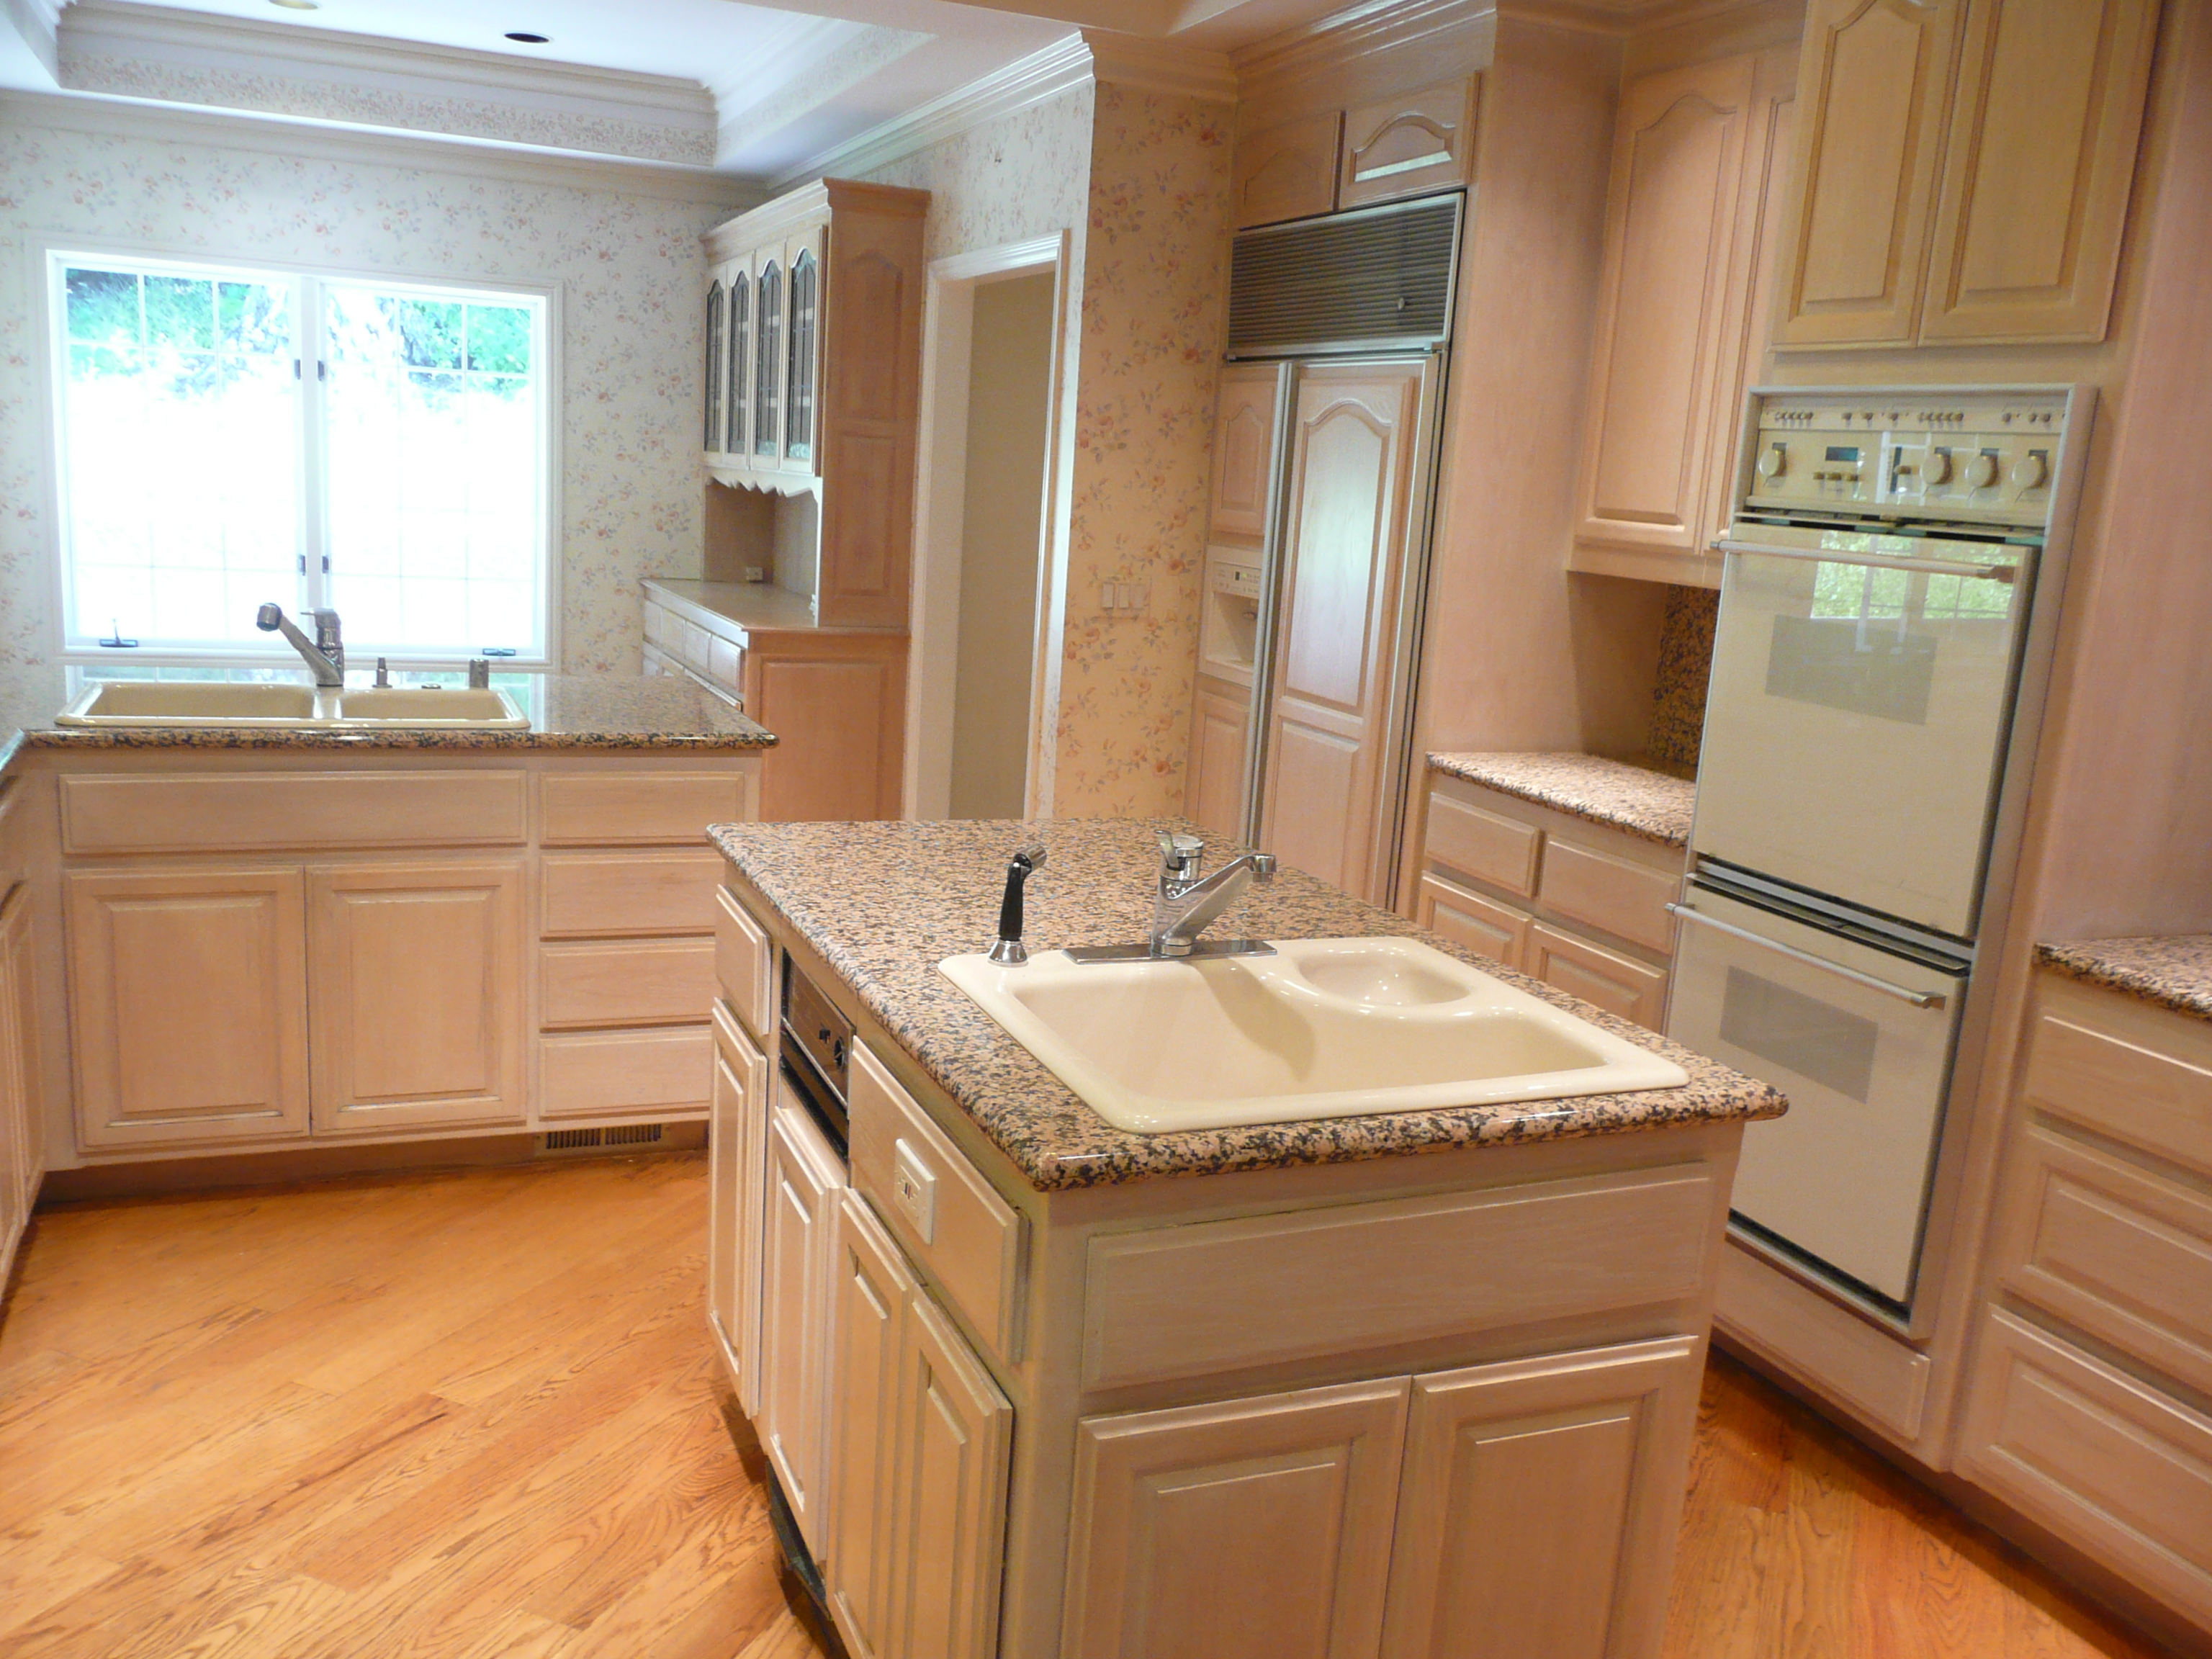 Kitchen Feng Shui Colors Part - 40: Wood Kitchen - Not Feng Shui Kitchen